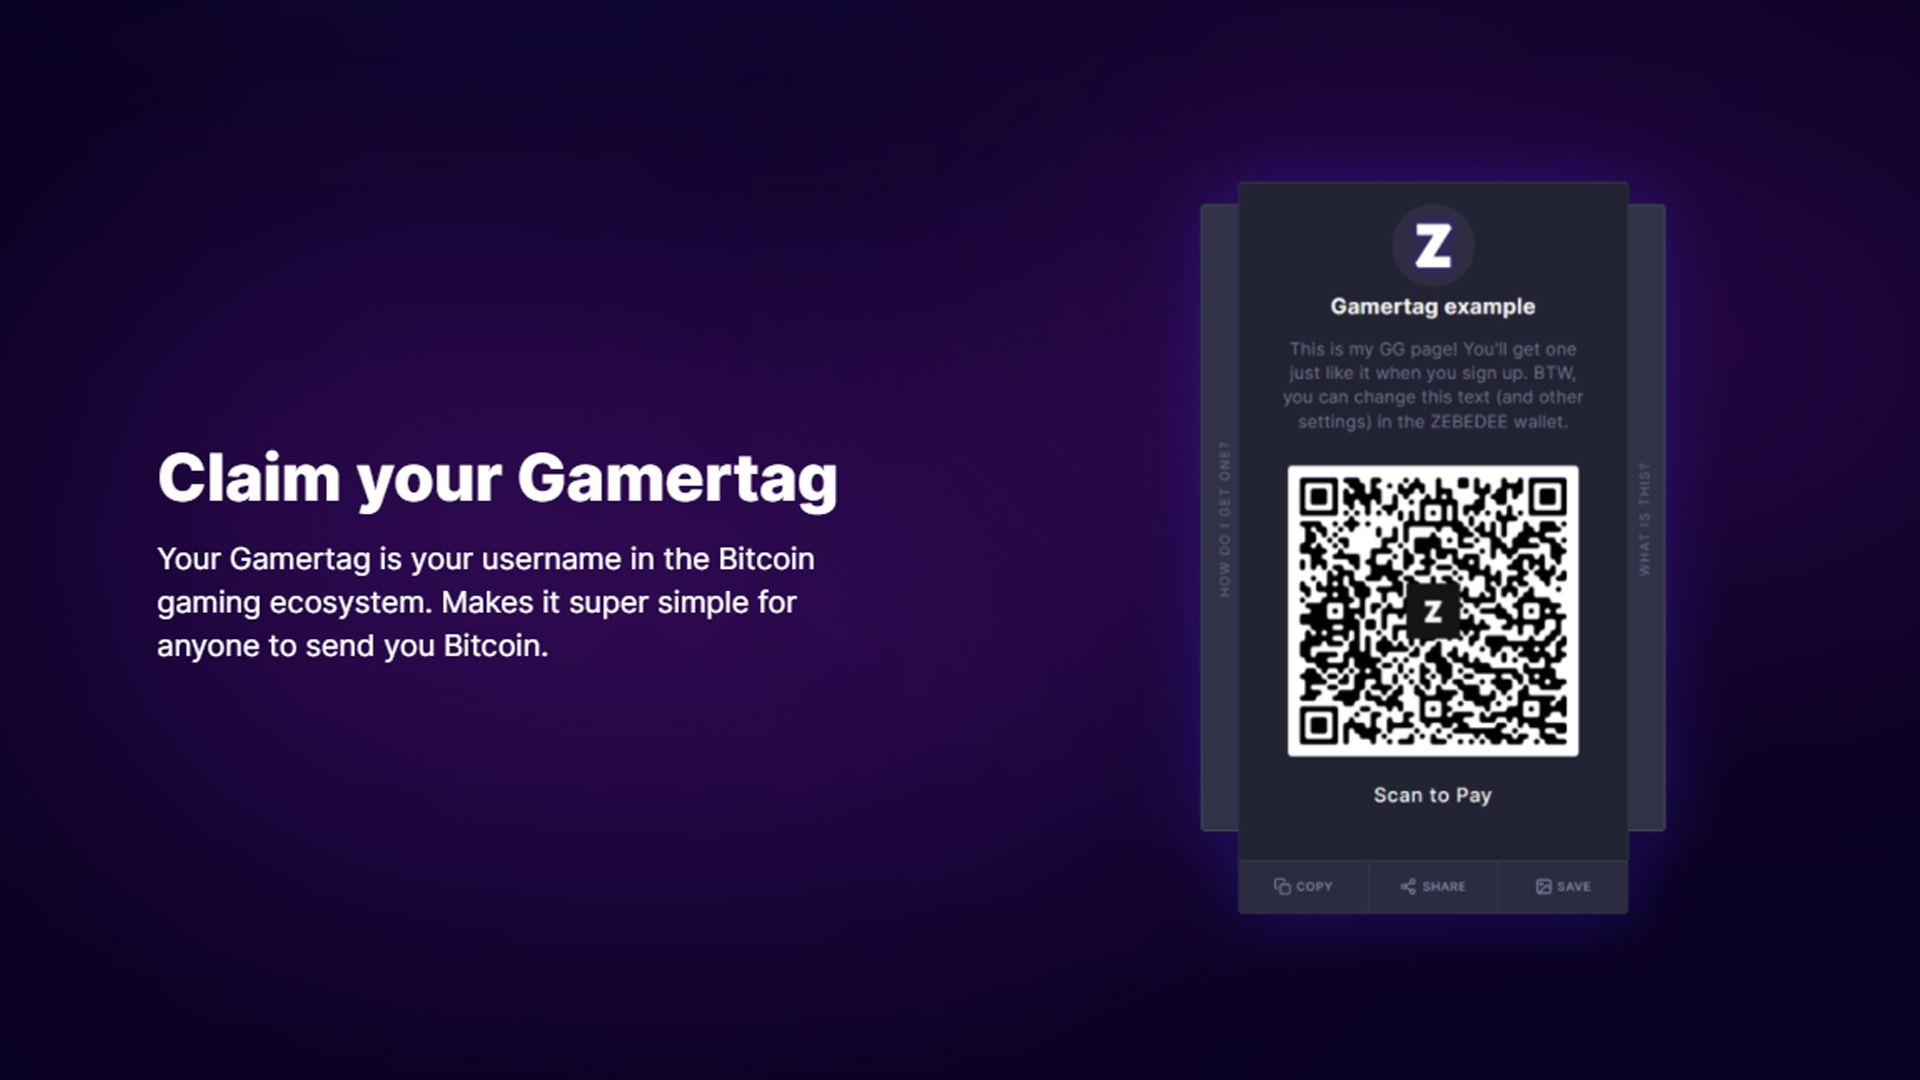 The Gamertag: The easy way to transact with anyone on ZEBEDEE